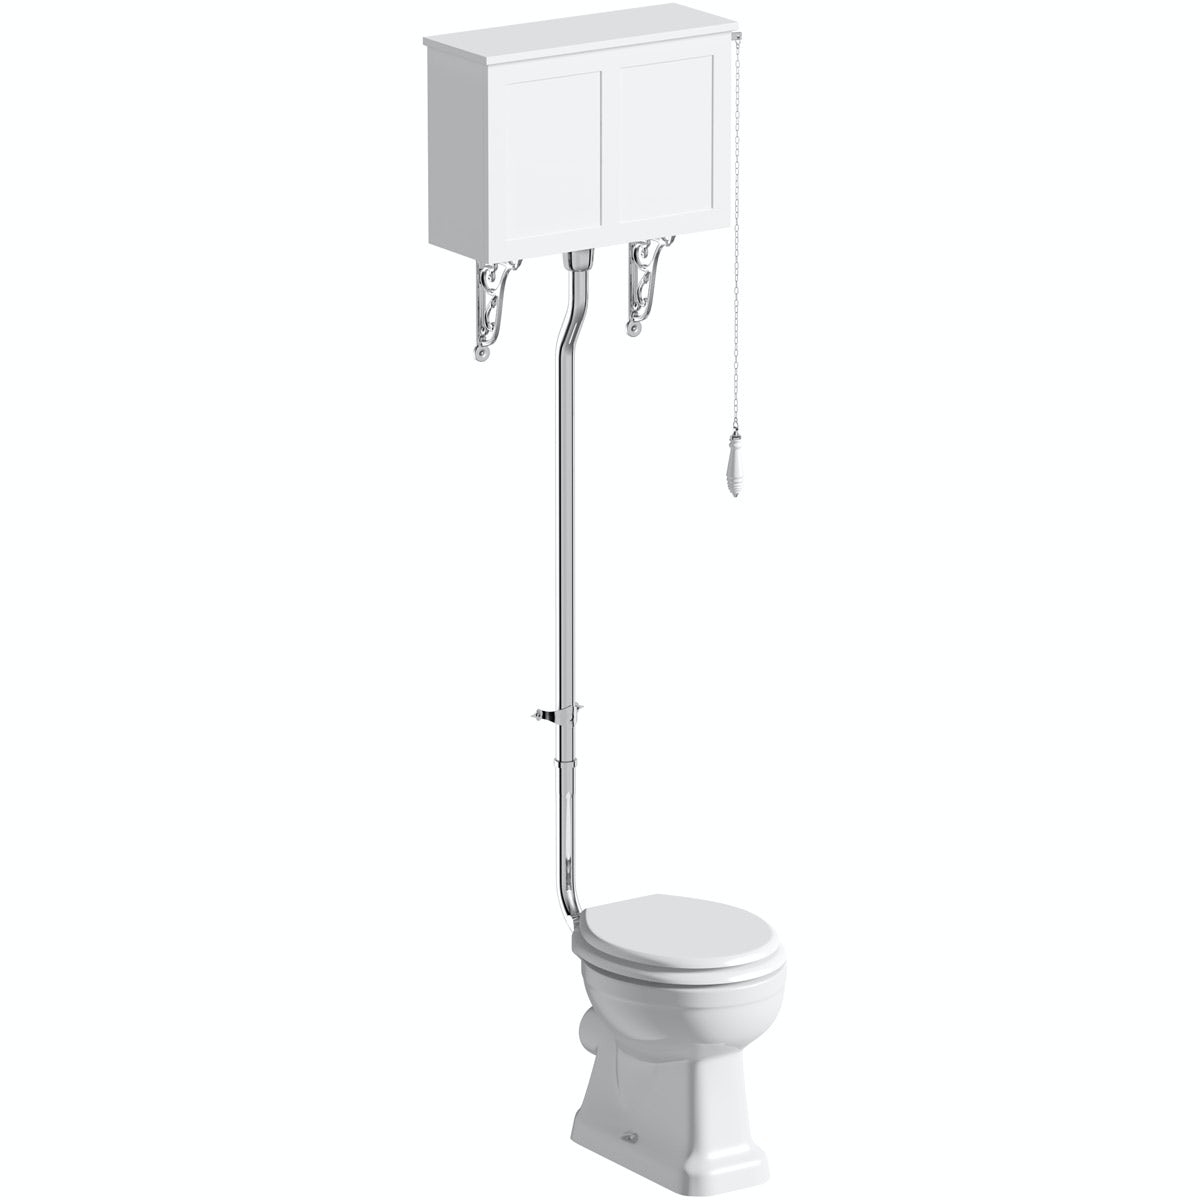 The Bath Co. Camberley high level toilet with white toilet box and seat with pan connector